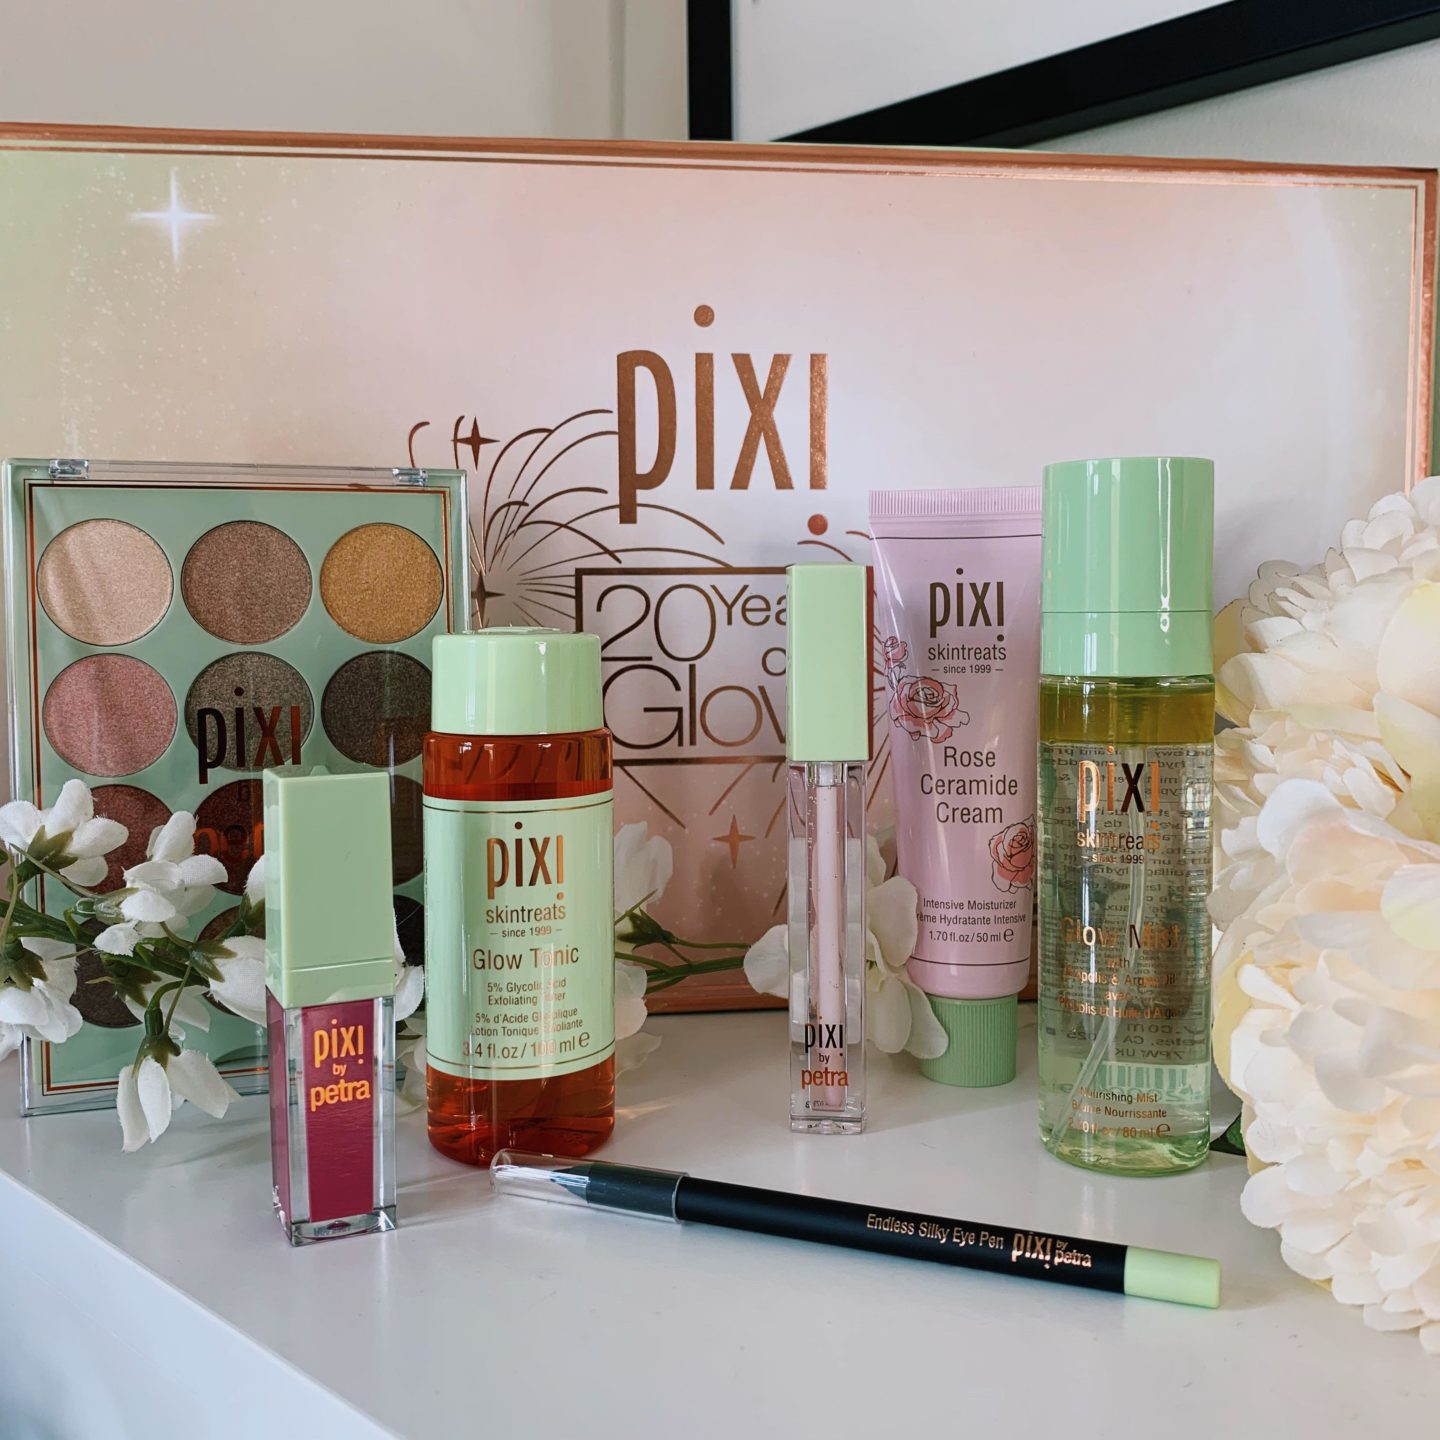 Pixi Beauty 20 Years of Glow - Miss Boux